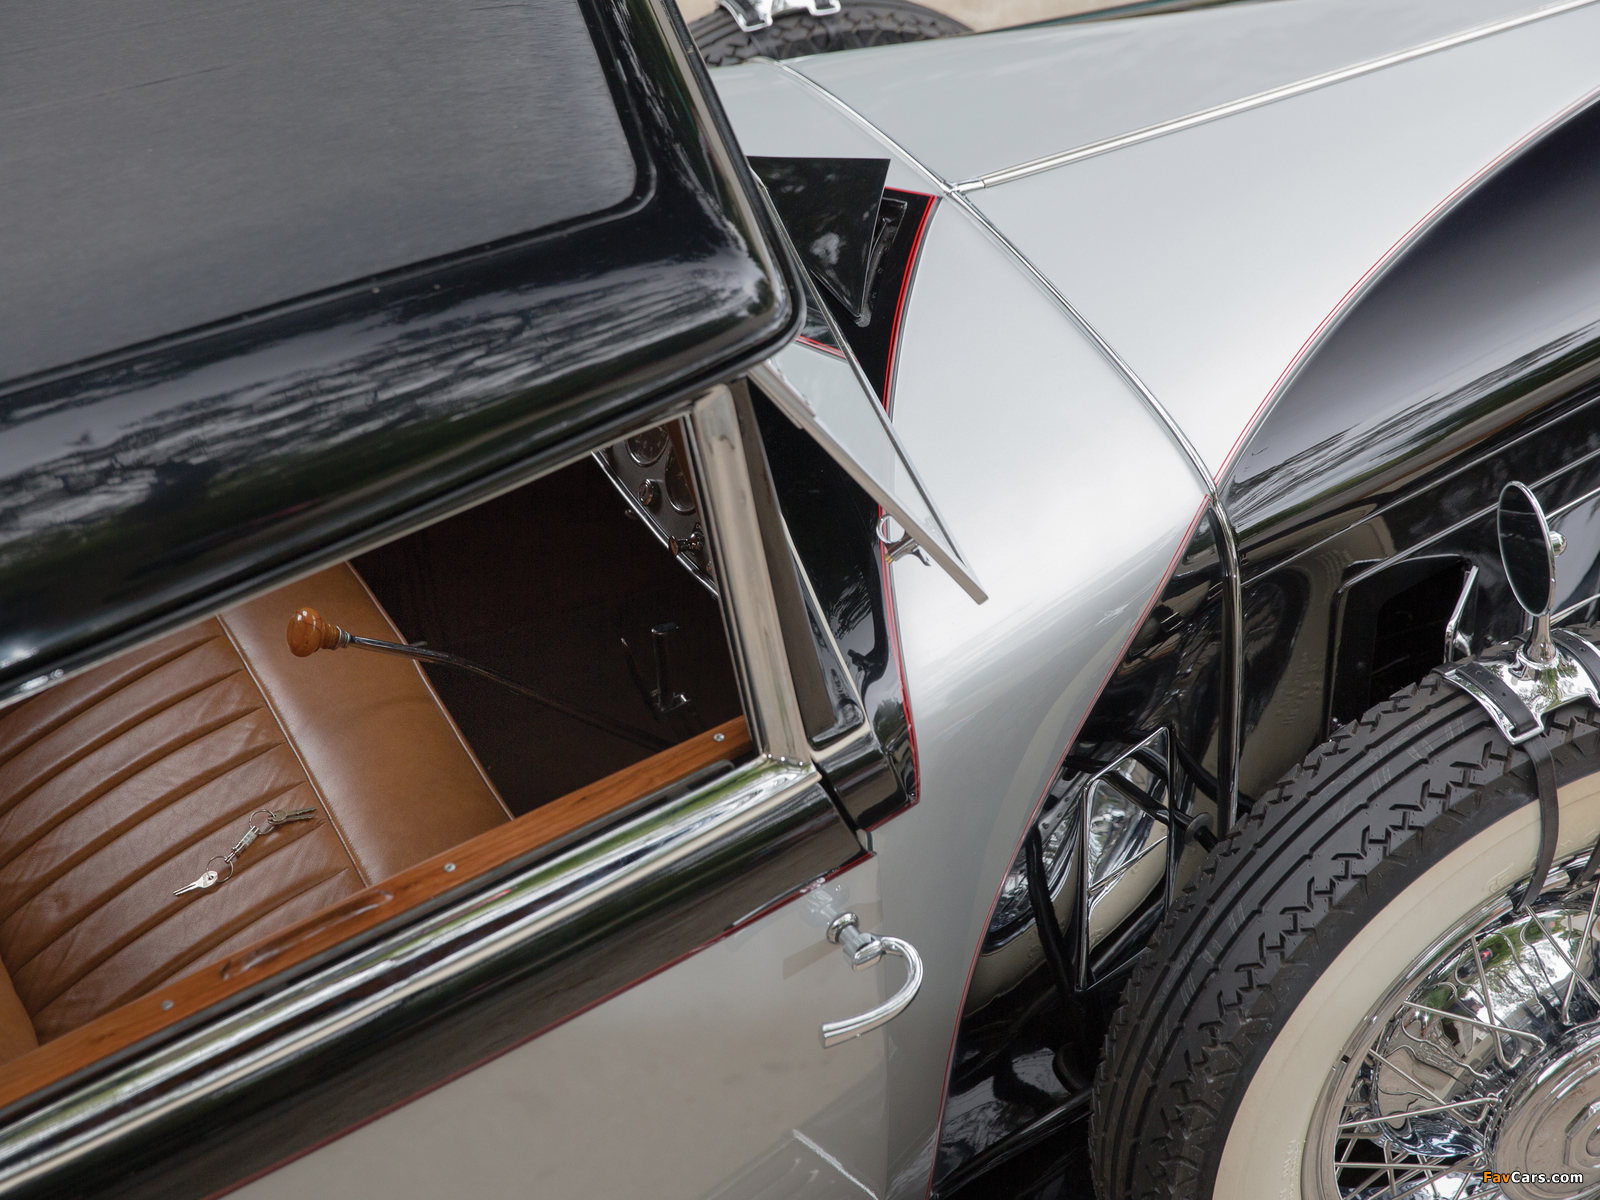 Cadillac V16 452 2/4-passenger Coupe by Fleetwood (4376) 1930 photos (1600 x 1200)